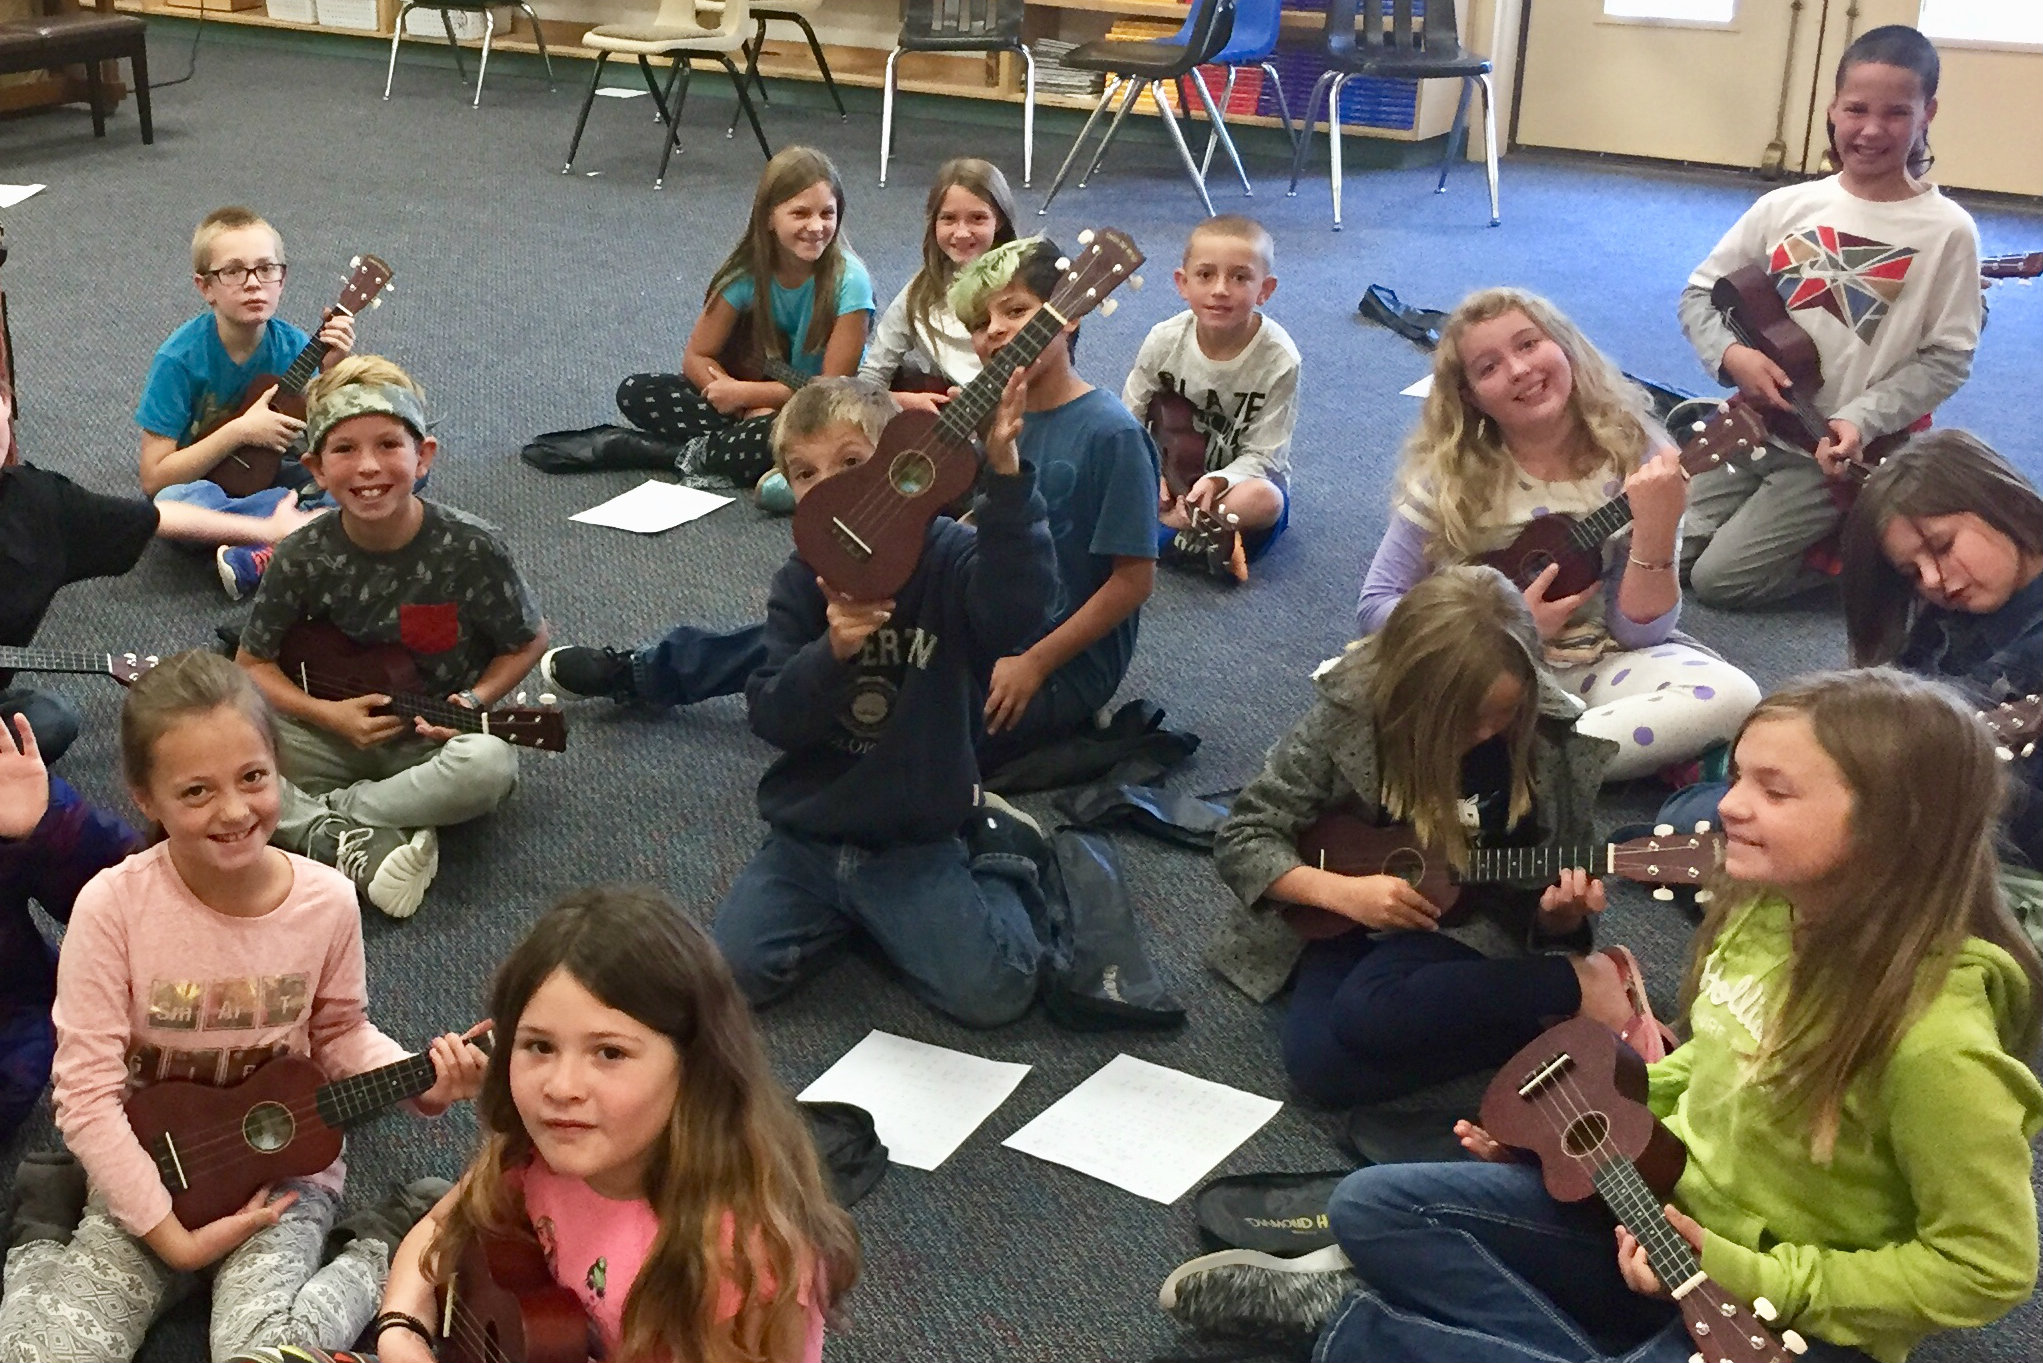 <p>The ukulele club at Fort Lewis Mesa Elementary School with their school instruments donated by the Bringing Music to Life Instrument Drive. </p>